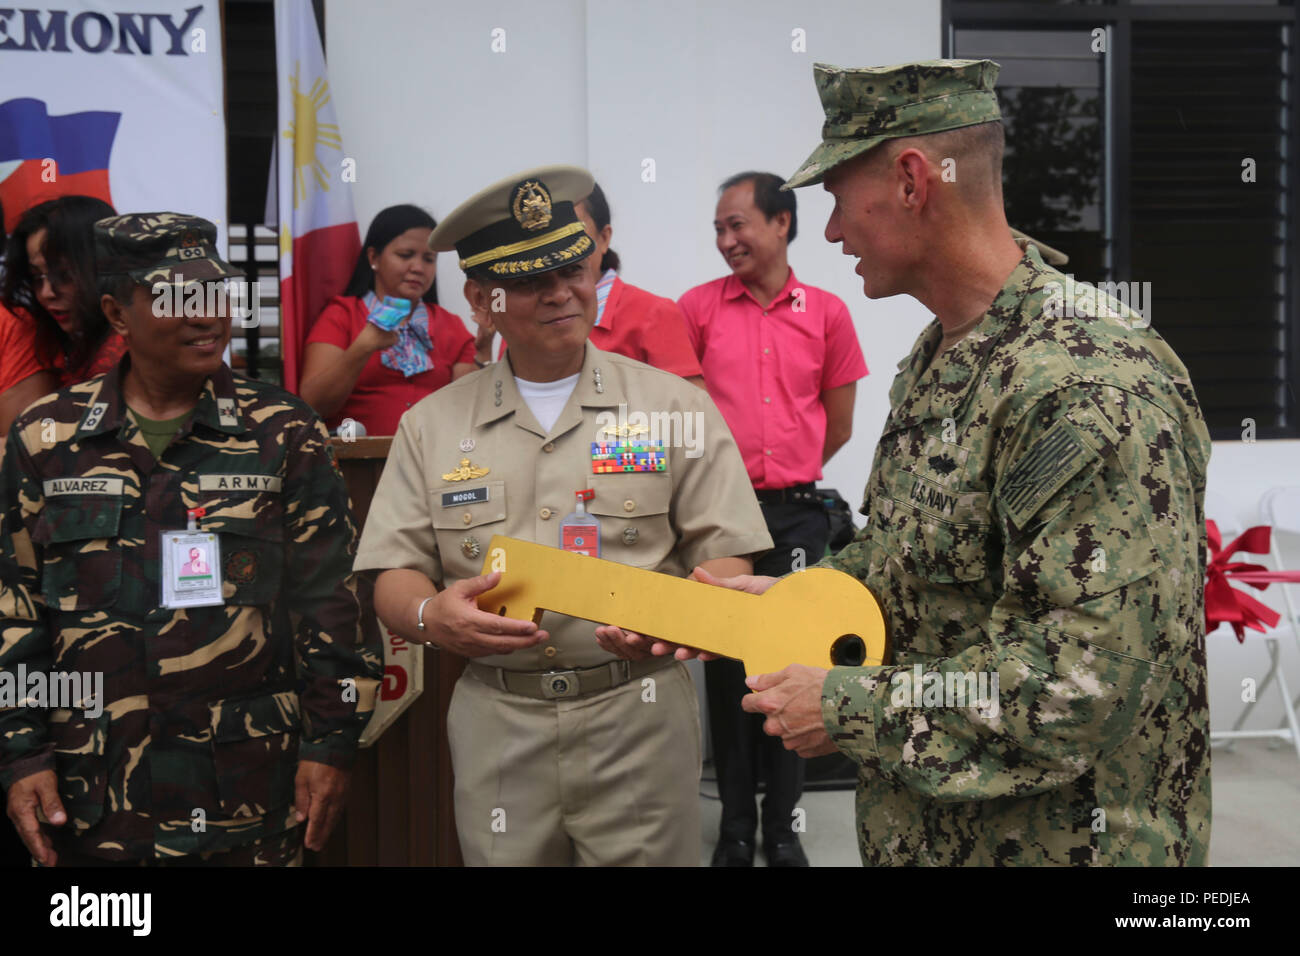 150810-M-GO800-312 SAN FERNANDO CITY, Philippines (Aug. 10, 2015) – Commodore, Task Force Forager Capt. James Meyer passes the key to Eulogio Clarence M. De Guzman Elementary School to Philippine navy Capt. Albert Mogol during a ribbon cutting ceremony Aug. 10. Task Force Forager will be in the Philippines until Aug. 15 providing medical and engineering assistance. Task Force Forager, embarked aboard the Military Sealift Command joint high speed vessel USNS Millinocket (JHSV 3) is serving as the secondary platform for Pacific Partnership, led by an expeditionary command element from the Navy's - Stock Image